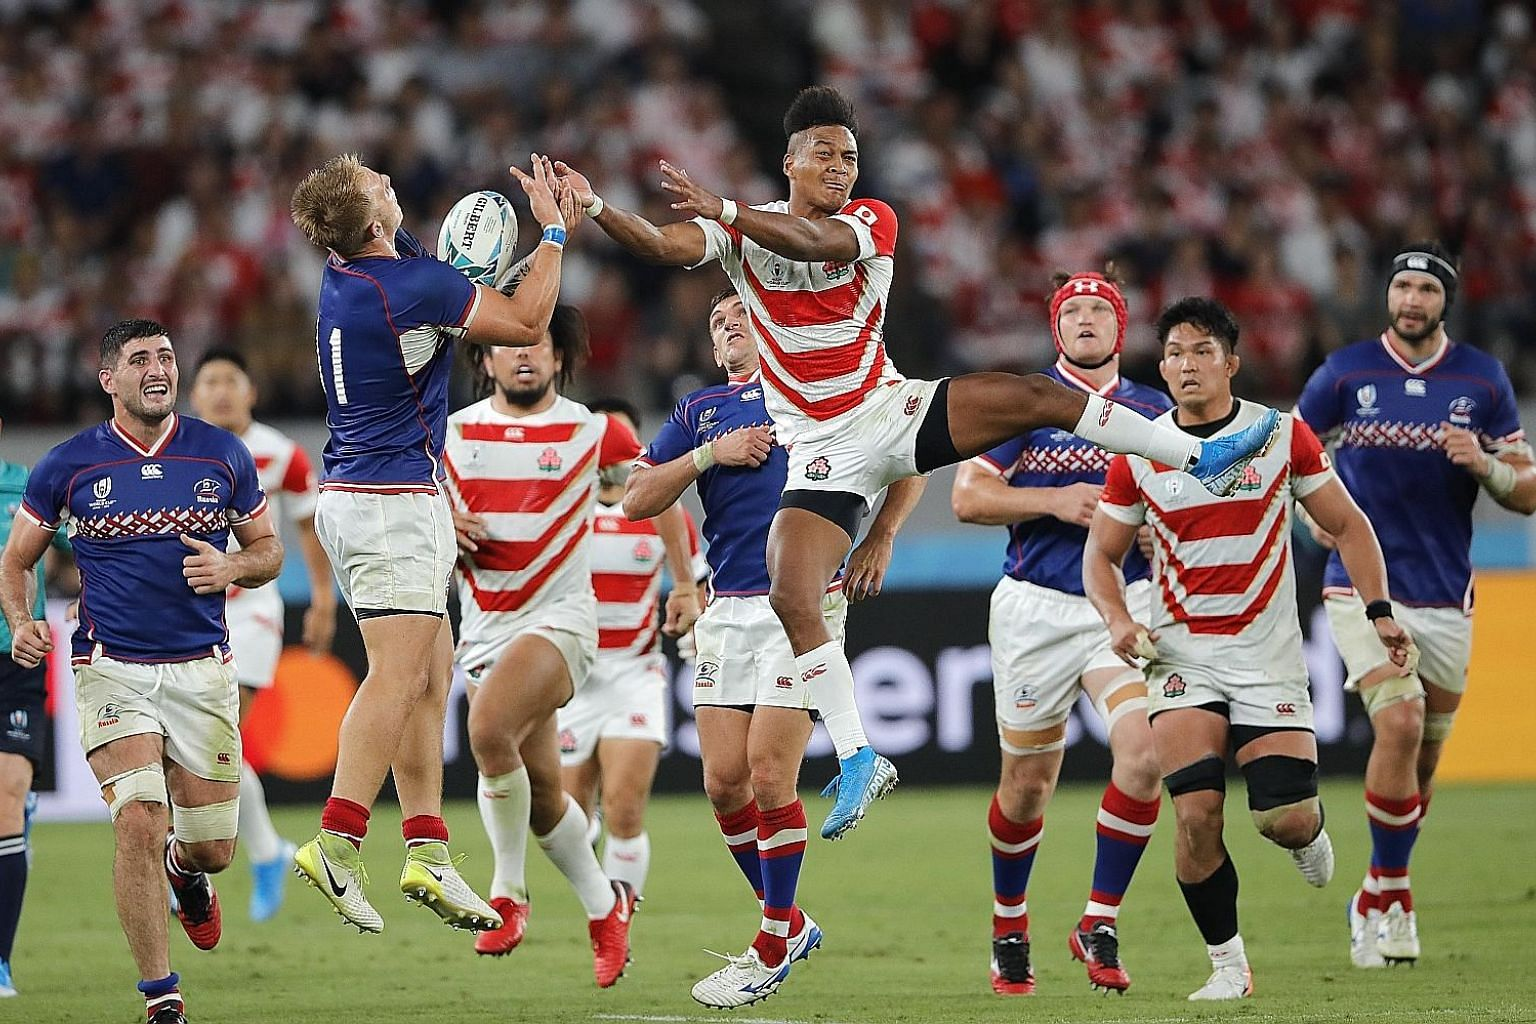 Japan's Kotaro Matsushima (centre) jumping to claim the ball in the Rugby World Cup game against Russia yesterday at Tokyo Stadium. PHOTO: ASSOCIATED PRESS